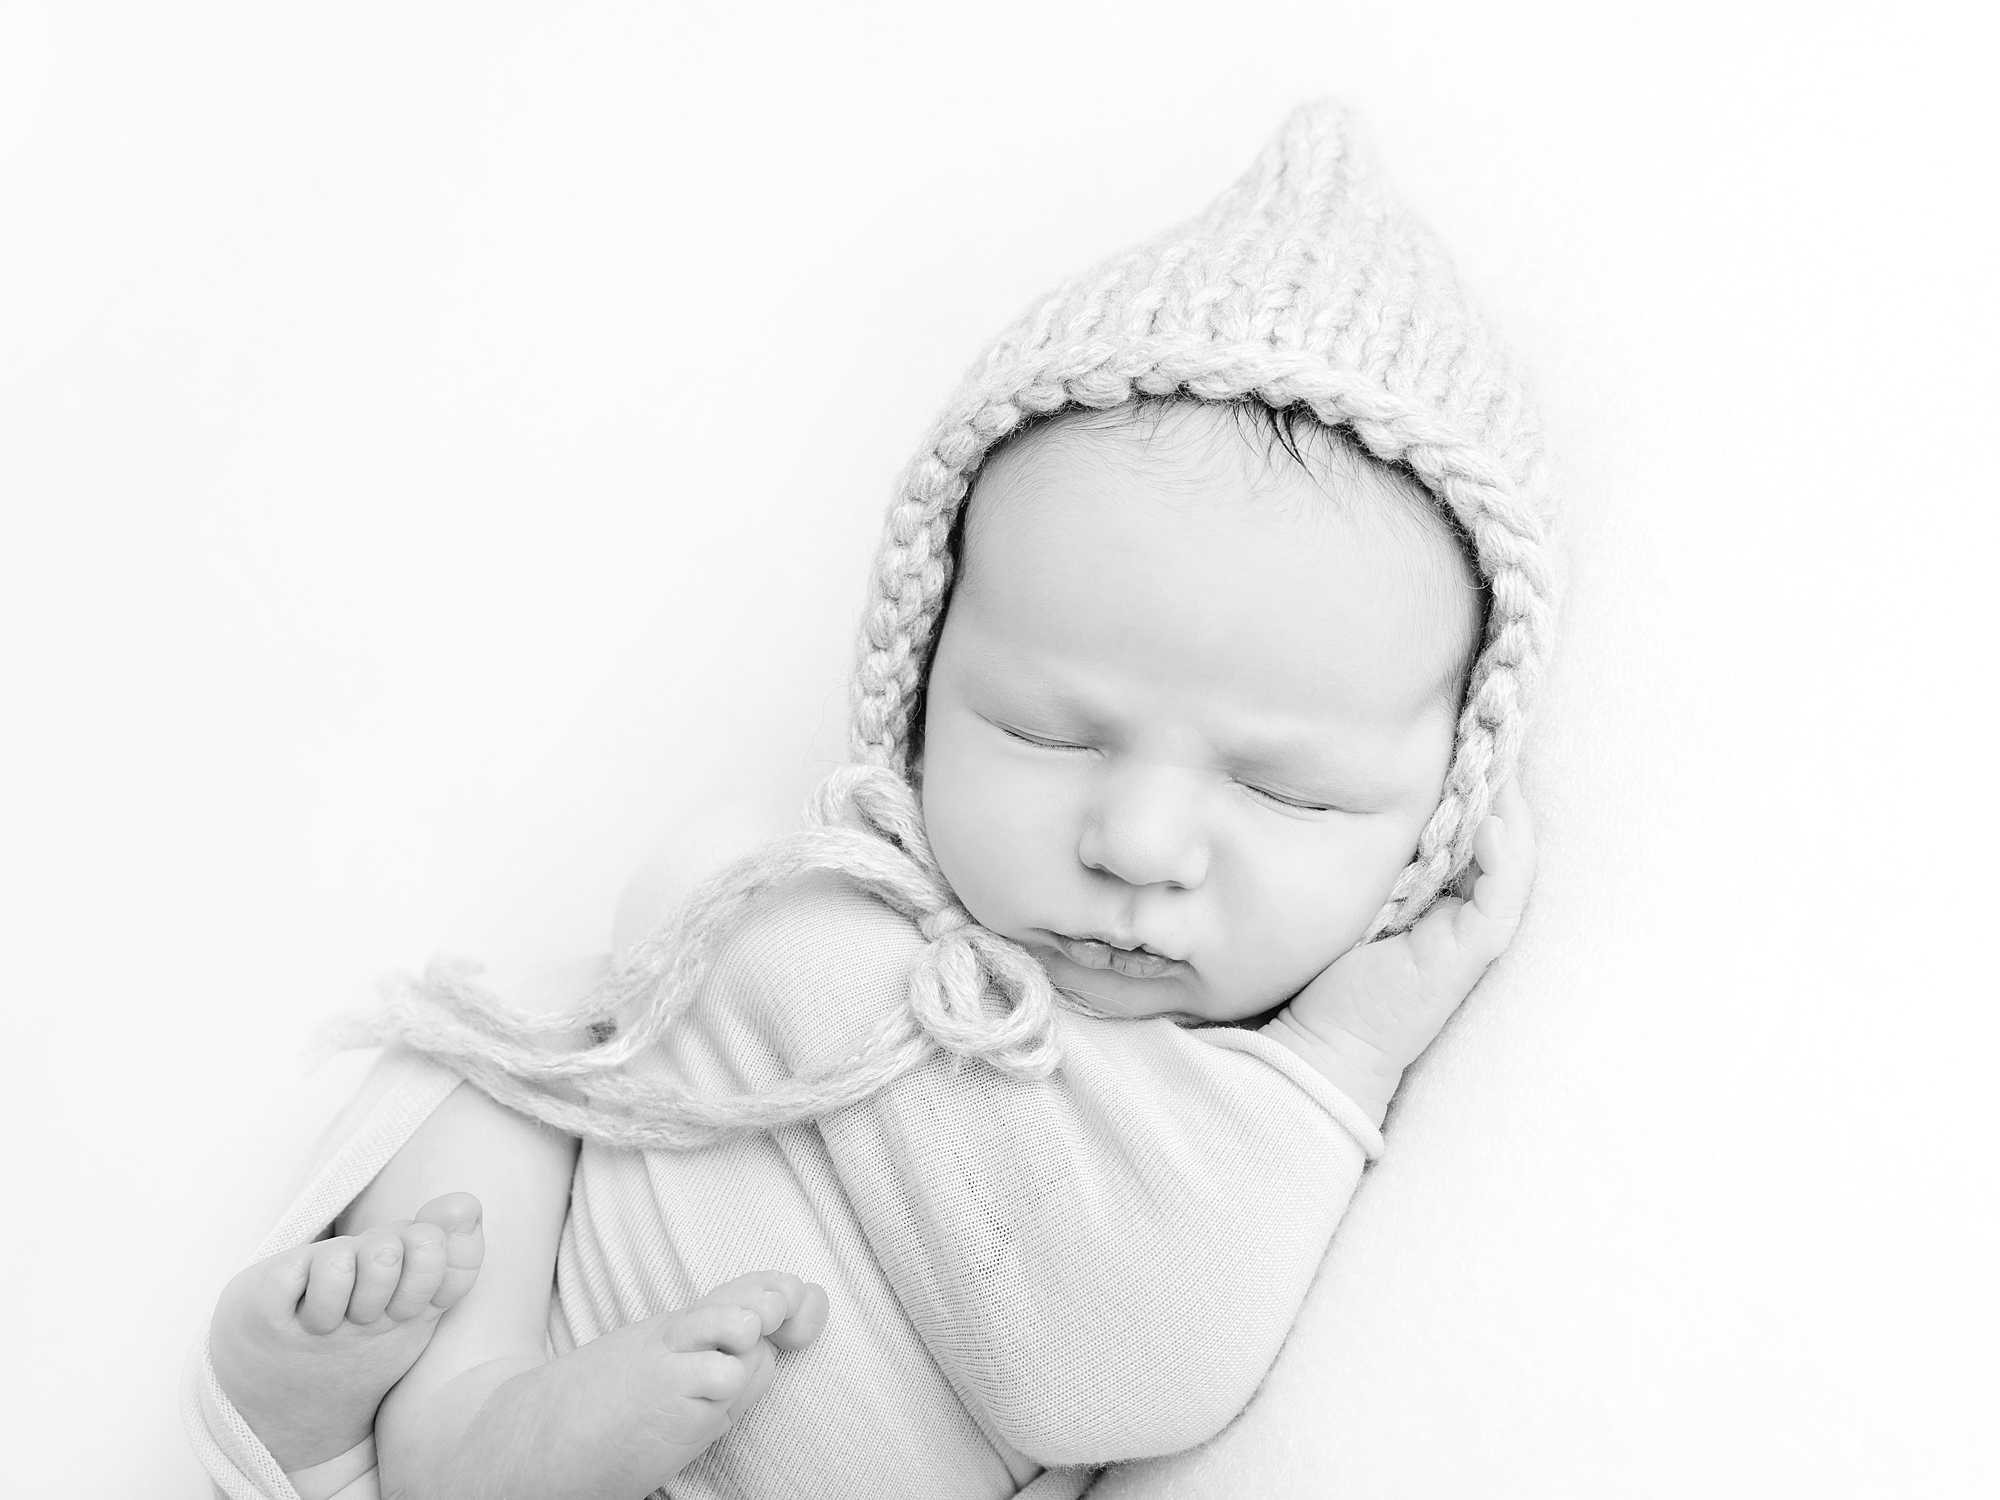 black and white pixie hat newborn photography in edinburgh by Anilorak Photography